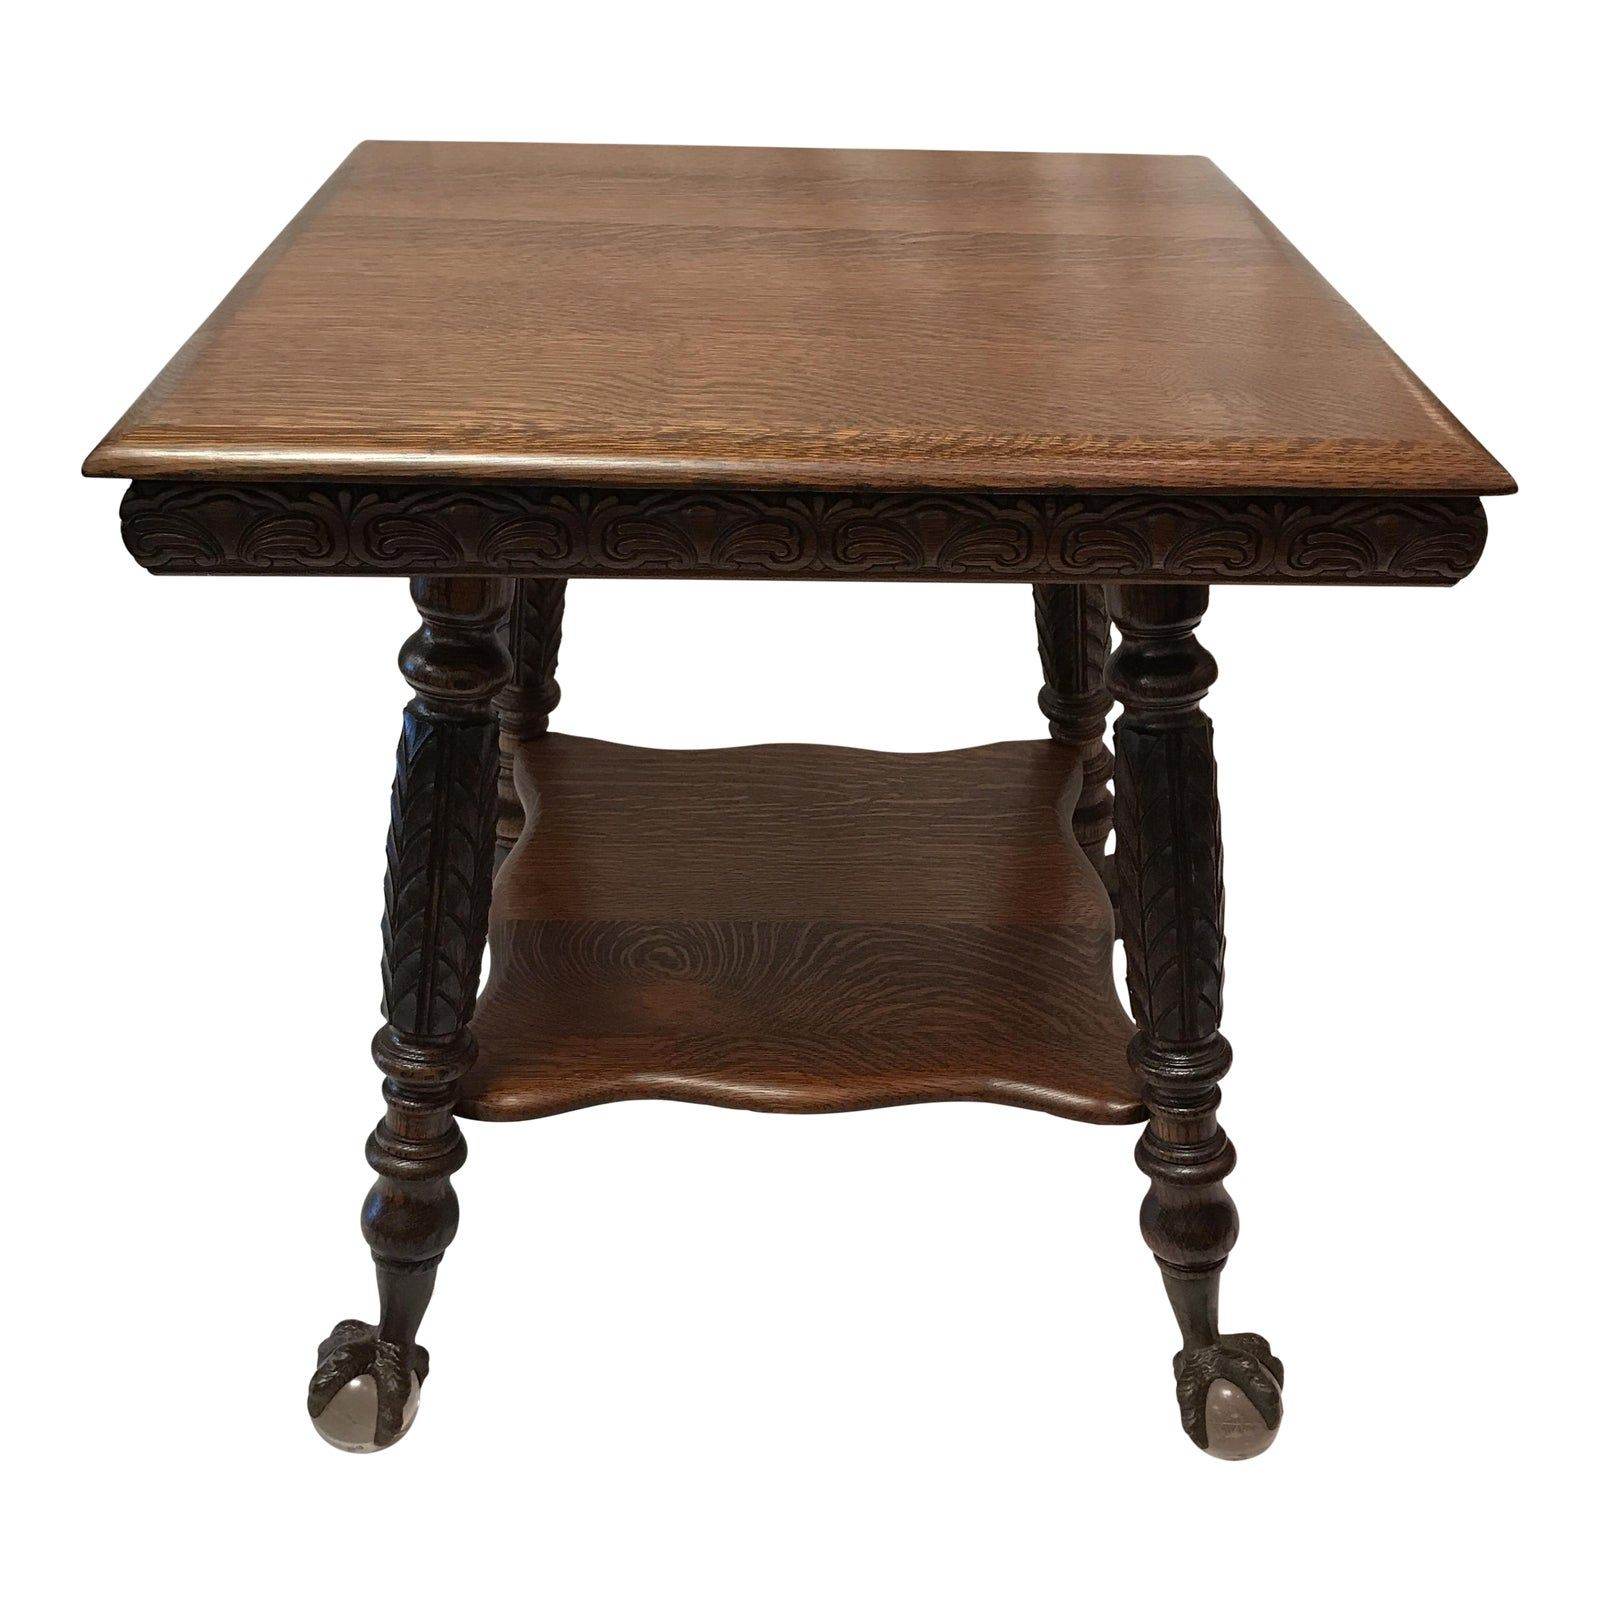 113 Reference Of Antique Sofa Table With Claw Feet In 2020 Antique Sofa Table Sofa Table Oak Table